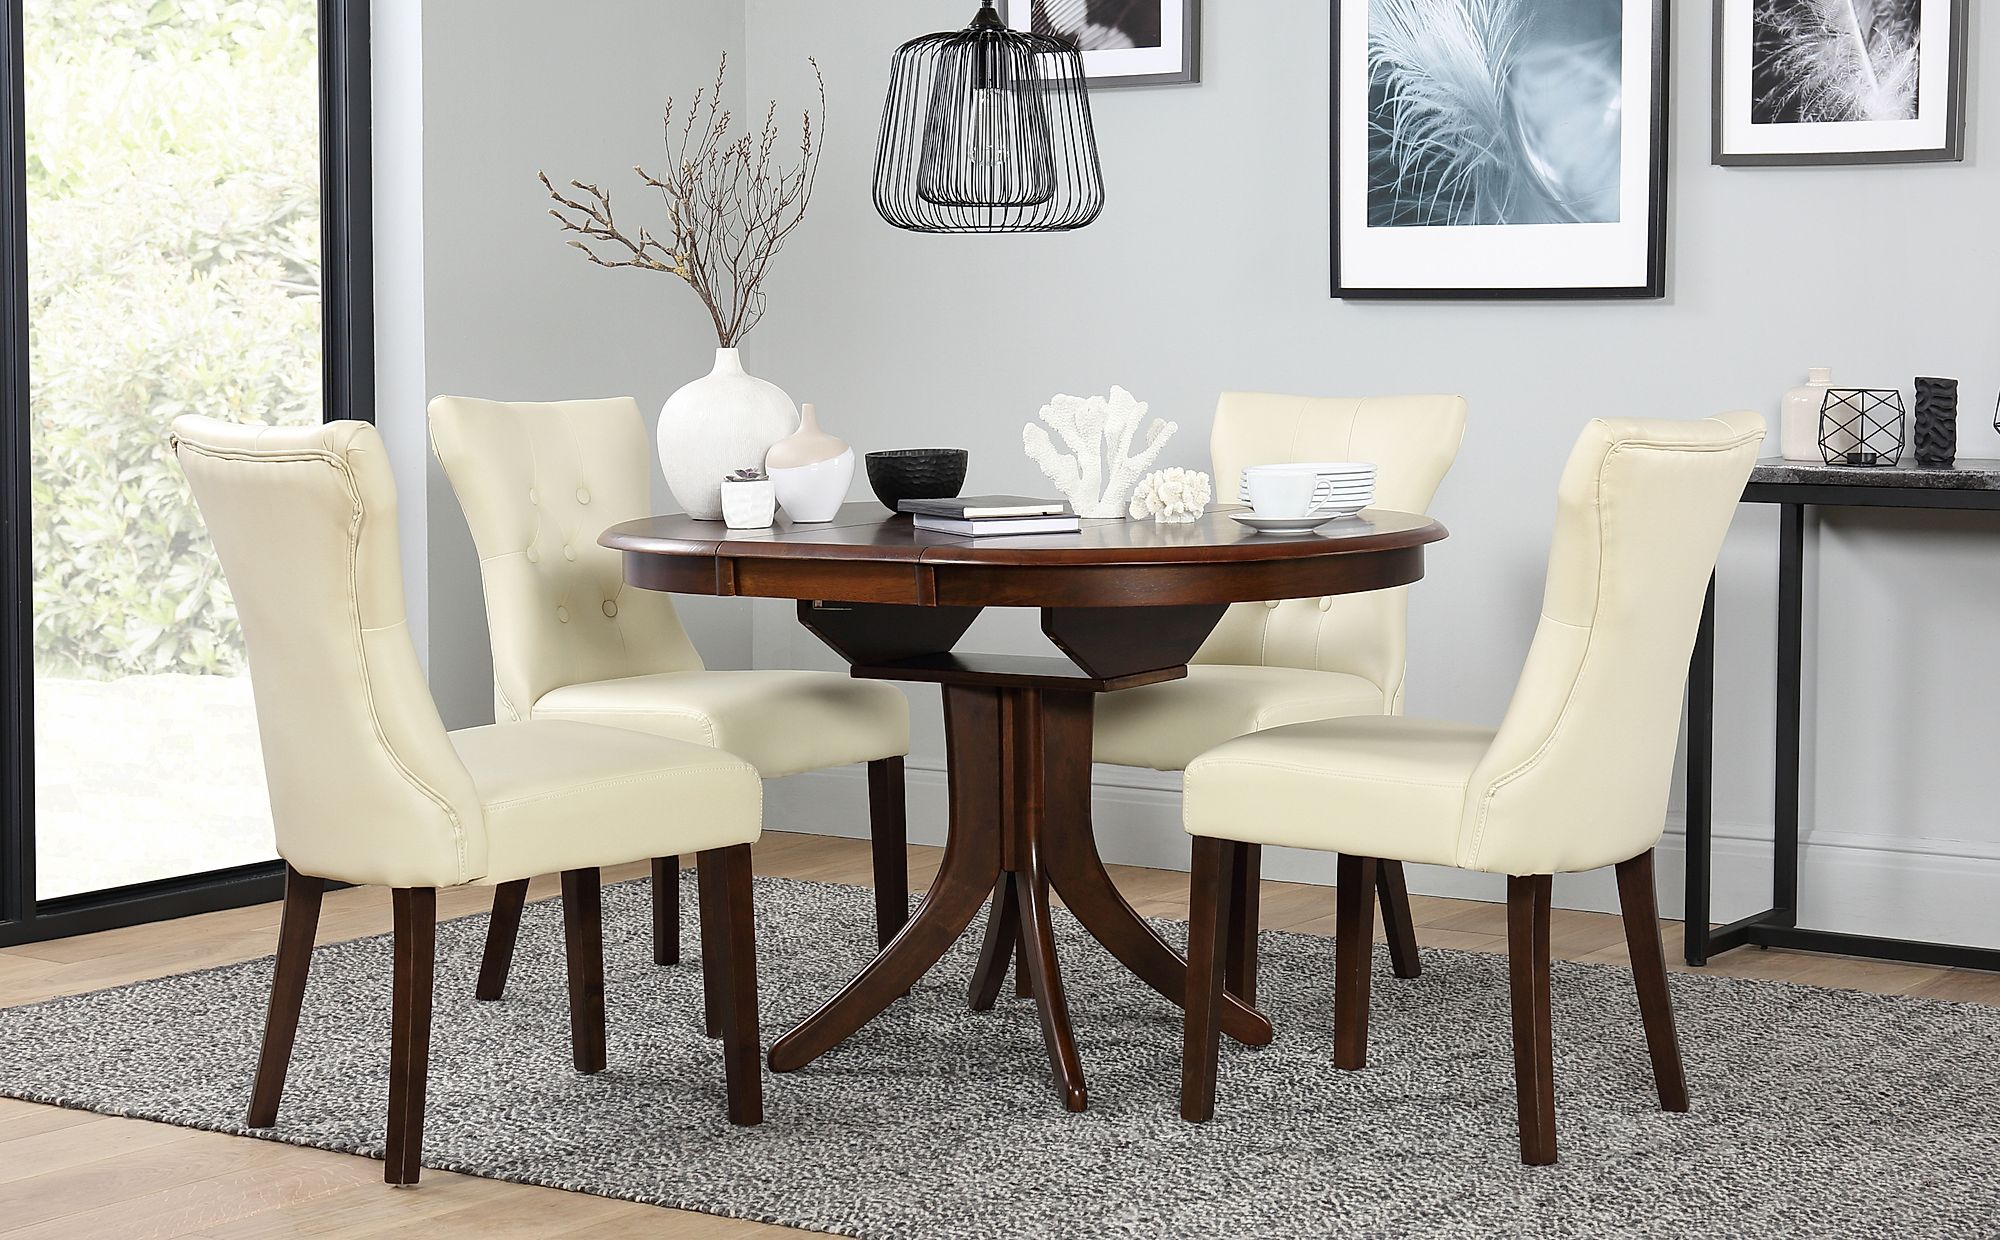 Hudson Round Dark Wood Extending Dining Table and 4 Chairs ...